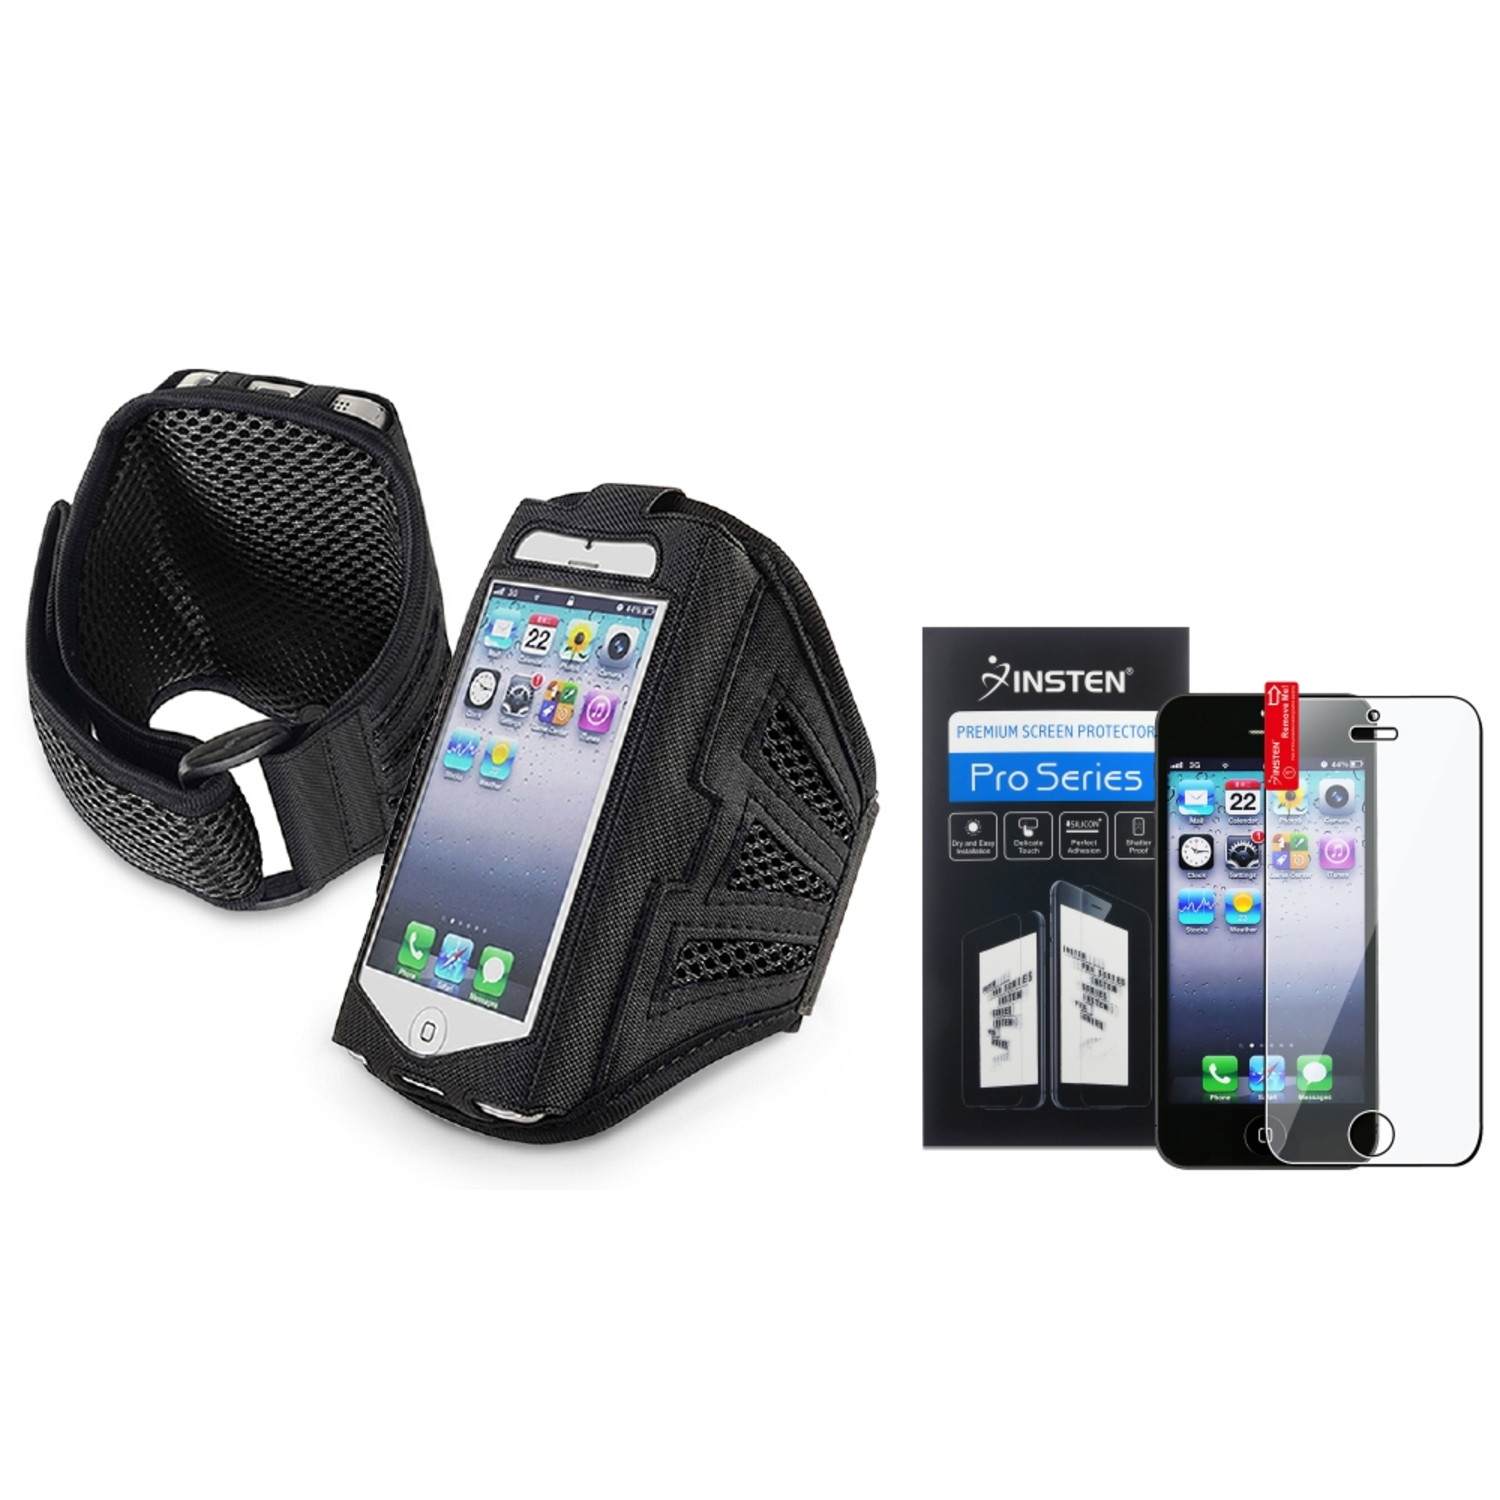 Insten Black/Black Sports Running Armband Gym Case for Apple iPhone SE 5C 5 5G 5s + Screen Protector